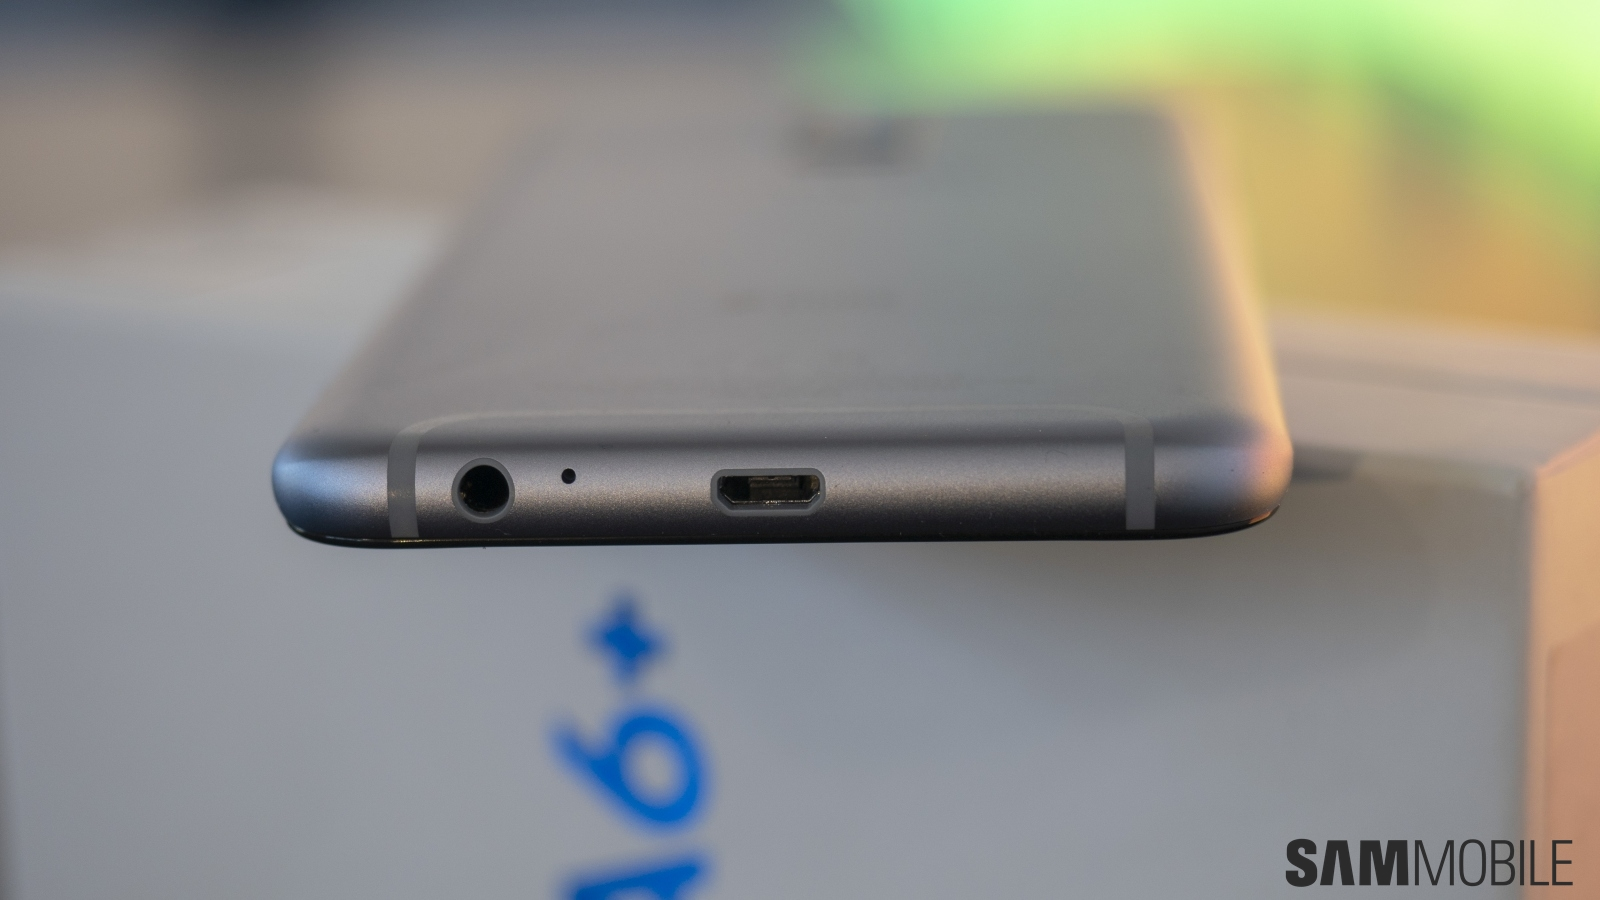 Samsung Galaxy A6 Plus review: A good phone let down by its